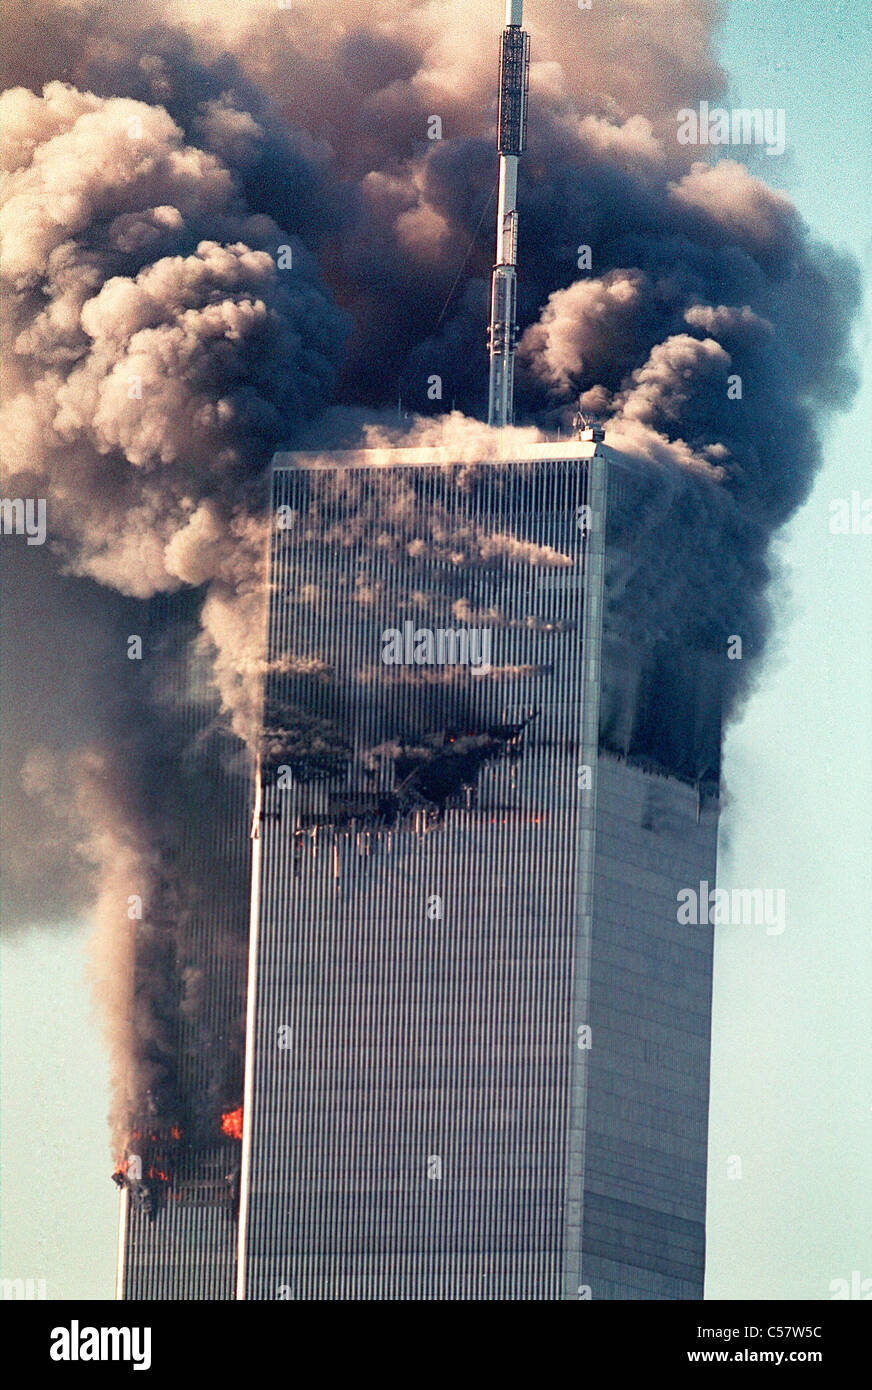 World Trade Center di New York City di attacco terroristico, Settembre 11, 2001. Immagini Stock